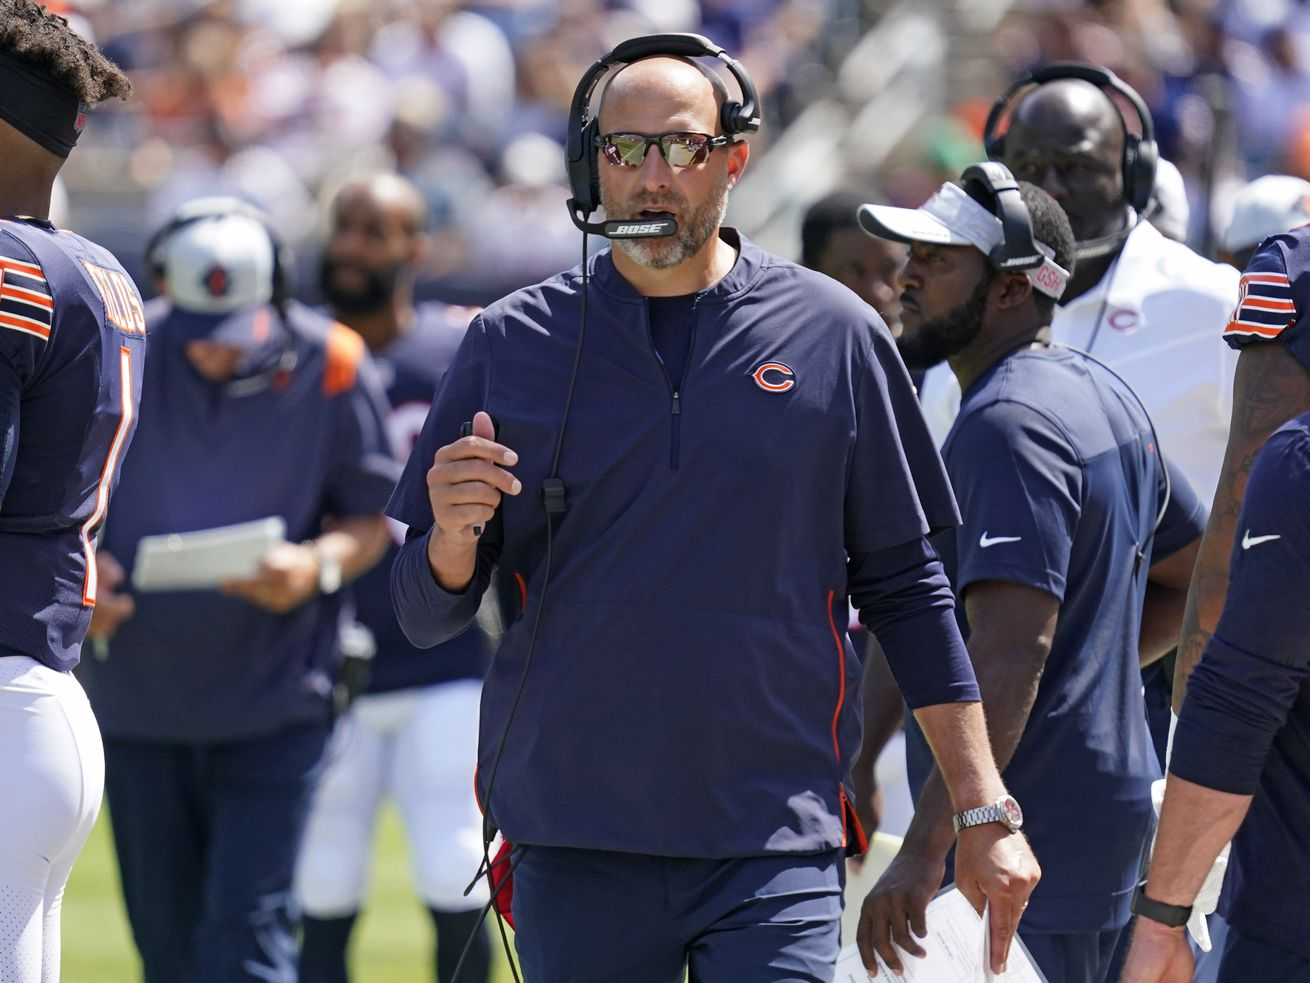 Matt Nagy is 28-20 as head coach of the Bears and has gone 0-2 in the playoffs.